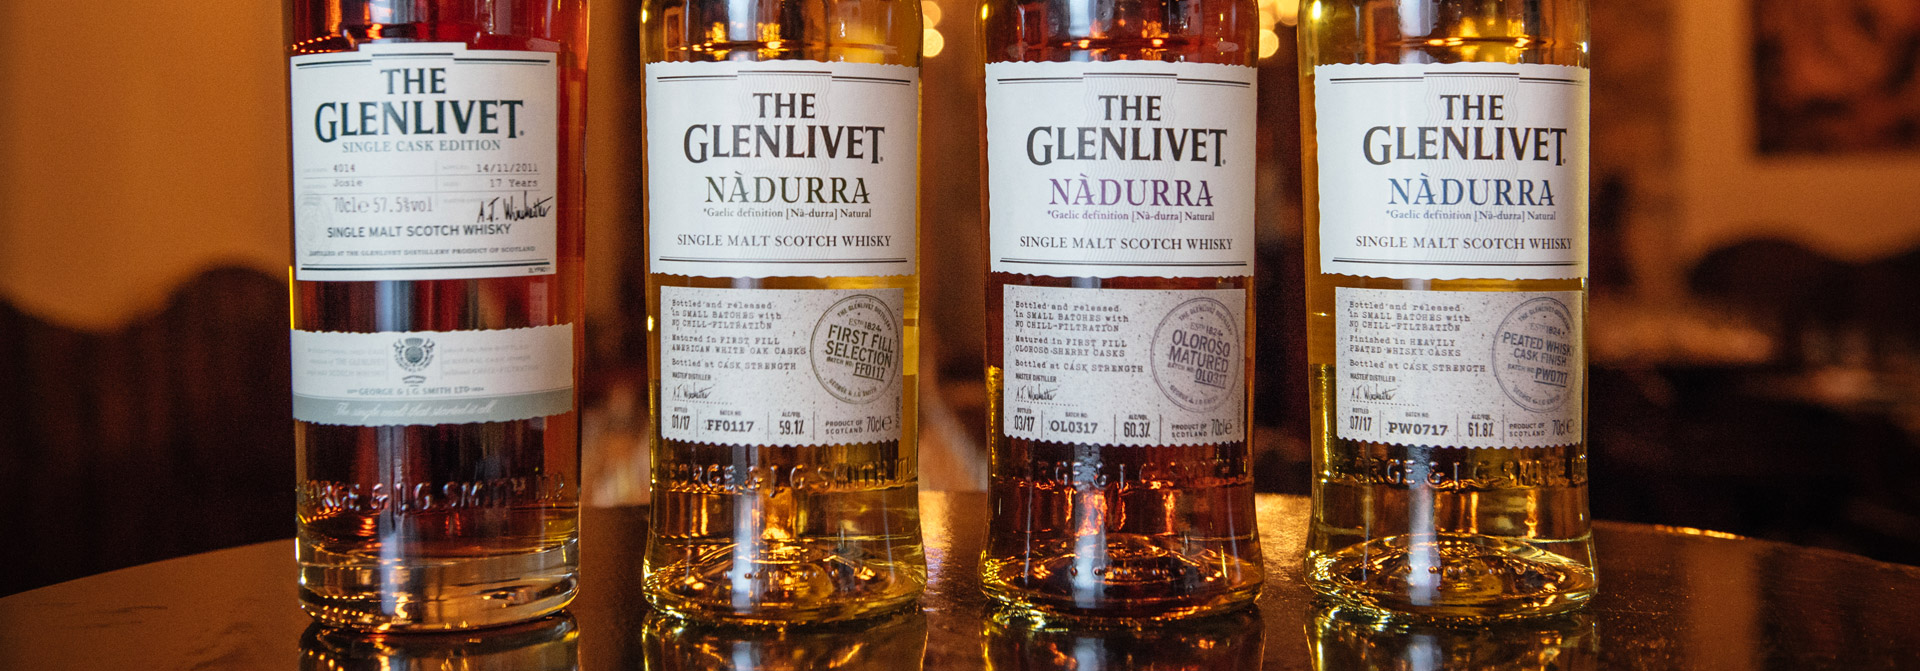 the tasters club whisky tasting day glenlivet nadurra avalon ουισκι